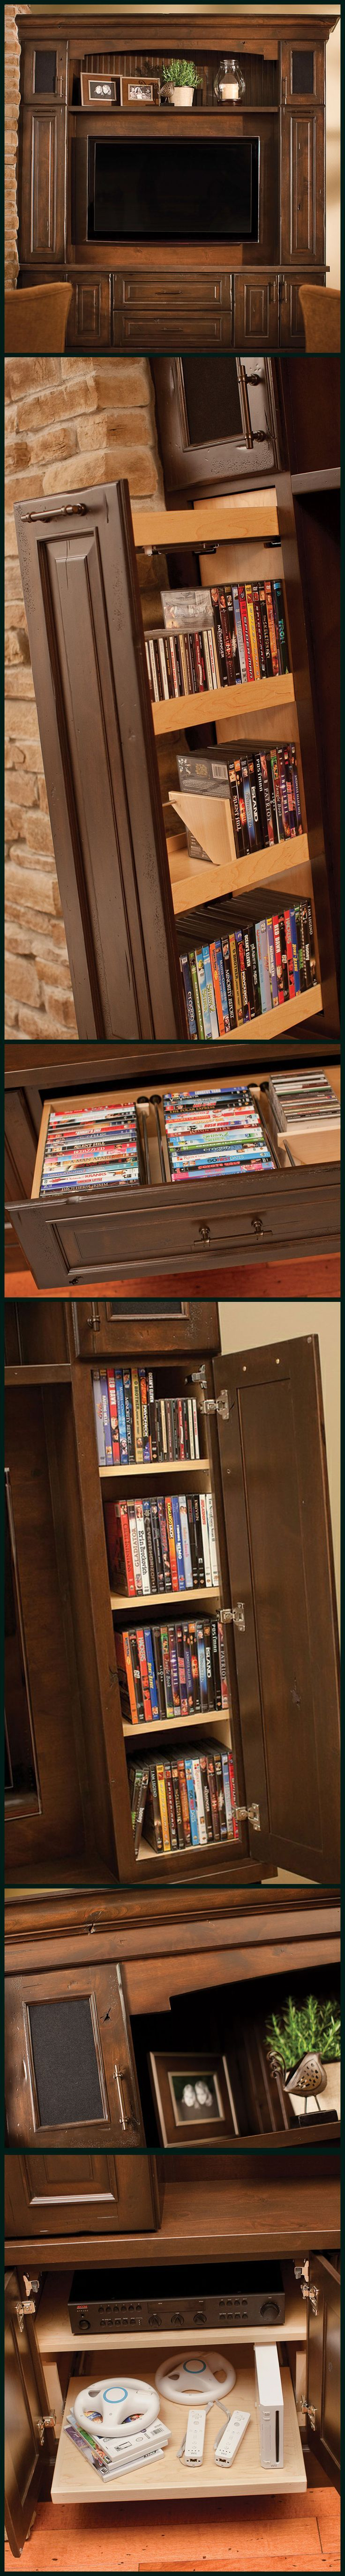 Think out of the box and design an Entertainment Center with storage for your whole family! Surround system & Speaker storage, game system roll-out shelves, pull-out media organizers, DVD & CD drawers, decorative storage, and so much more! - Dura Supreme Cabinetry.